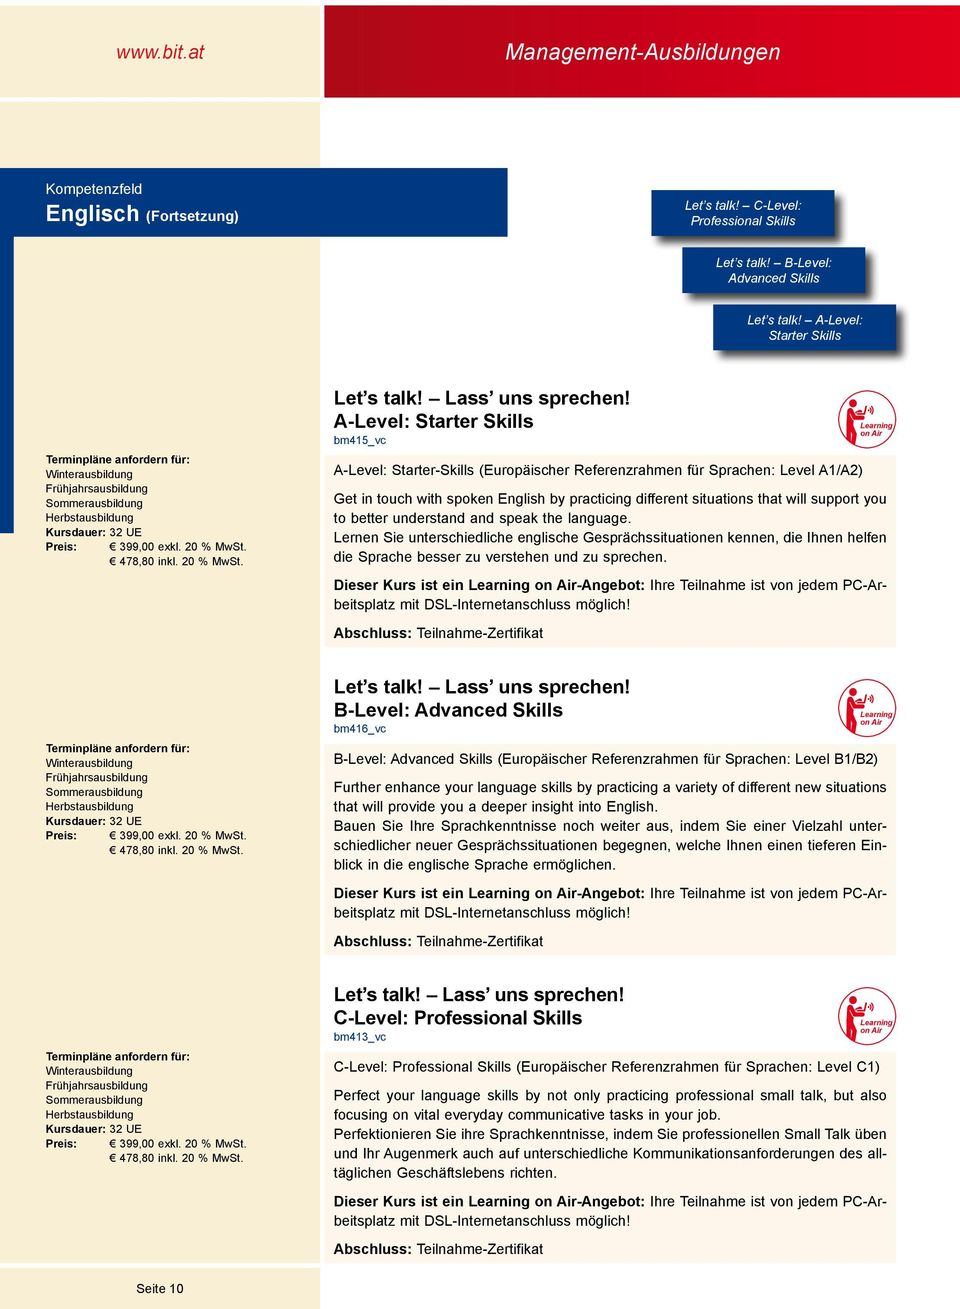 A-Level: Starter Skills bm415_vc A-Level: Starter-Skills (Europäischer Referenzrahmen für Sprachen: Level A1/A2) Learning on Air Get in touch with spoken English by practicing different situations